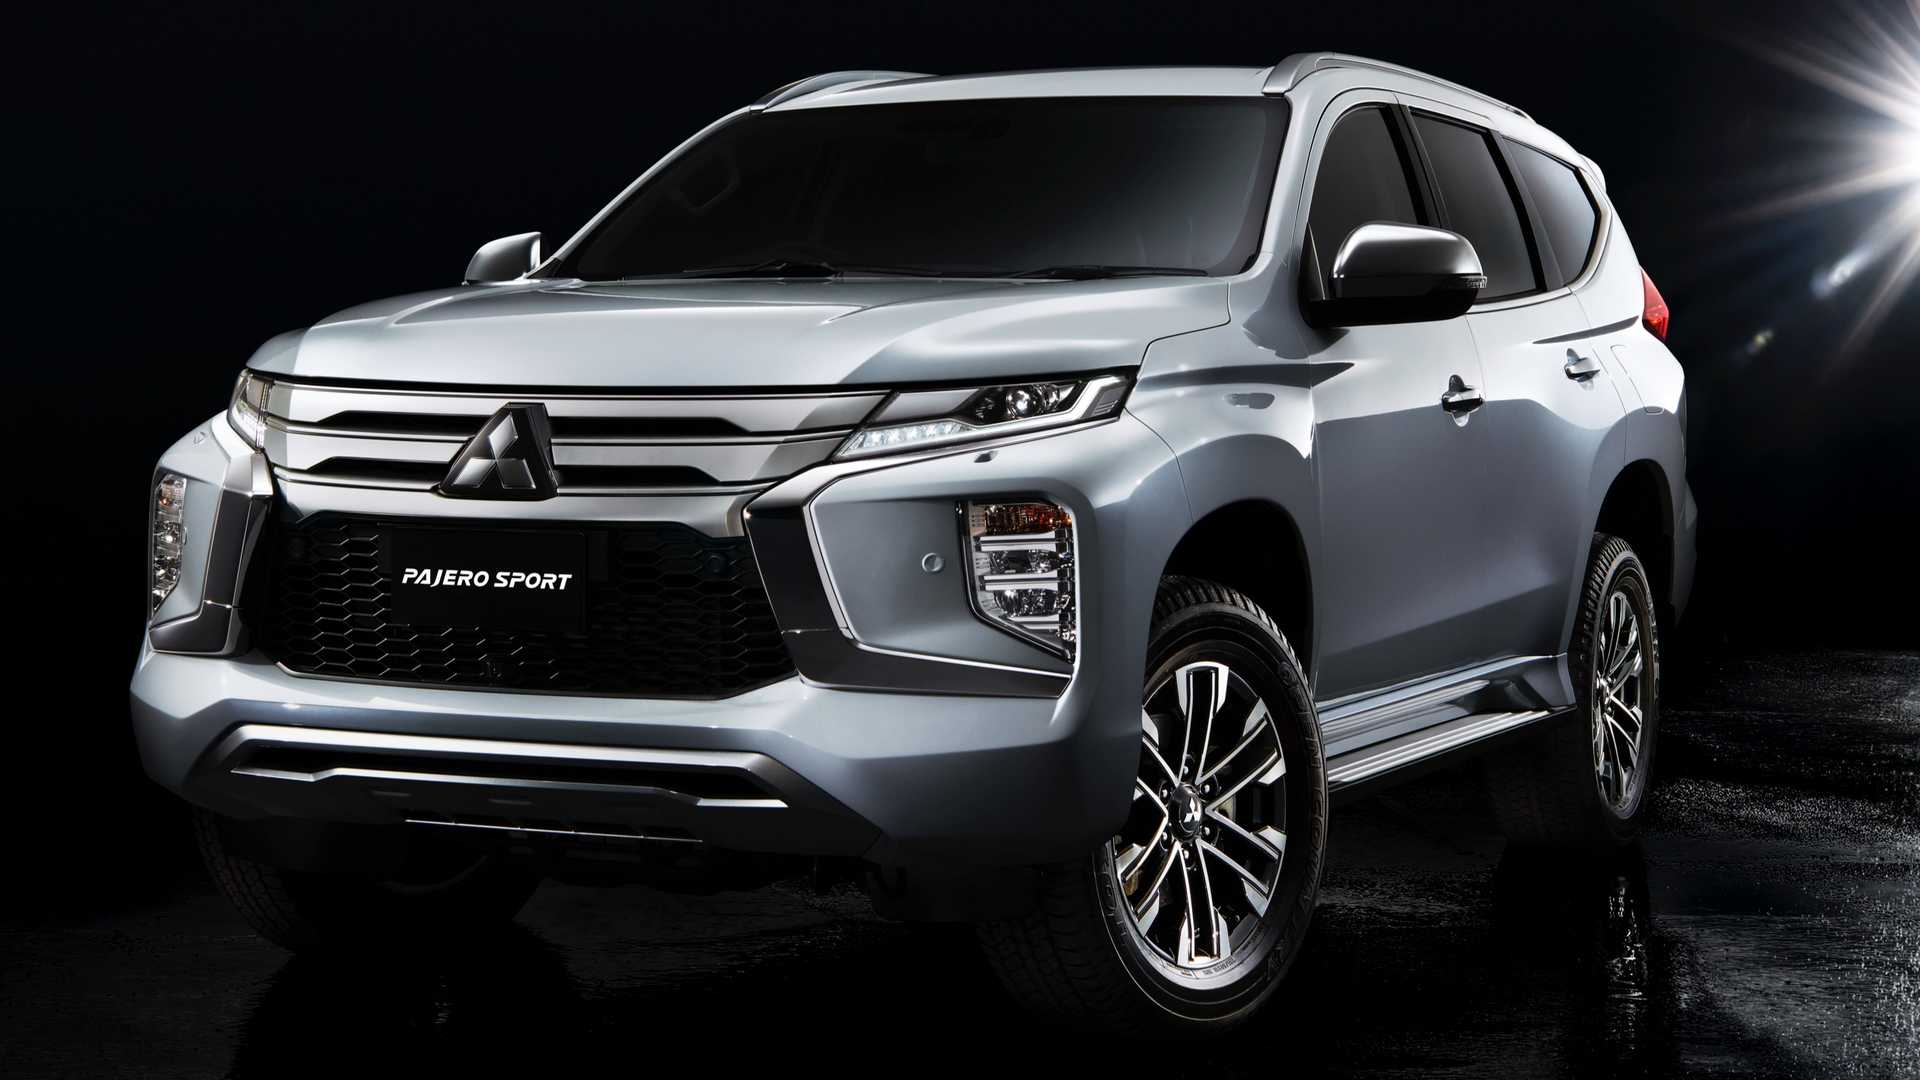 95 New Mitsubishi New Pajero 2020 Model